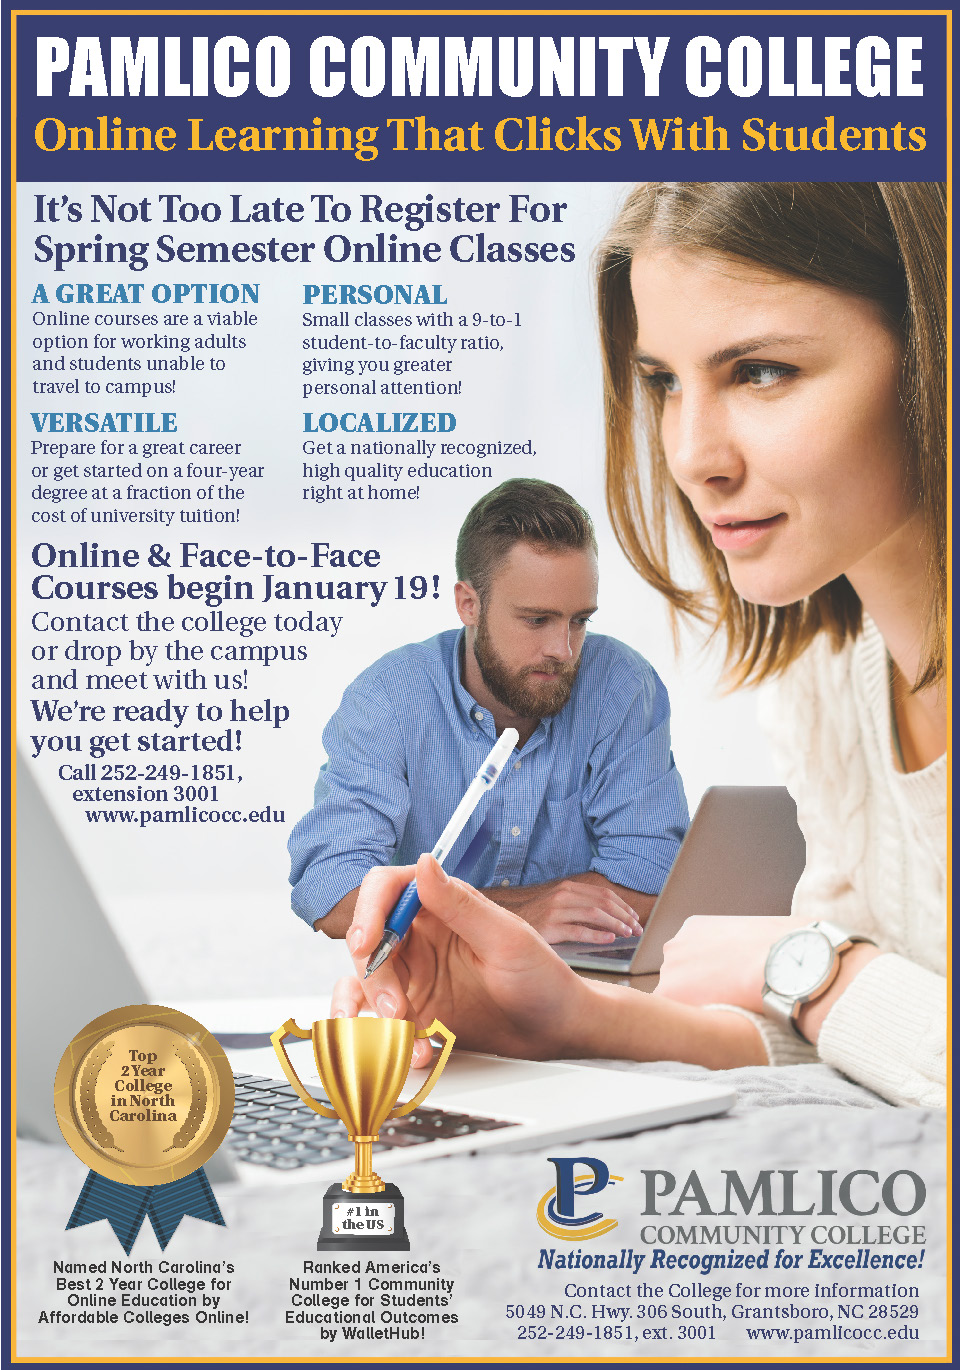 01-07-2021 Pamlico College Community Online